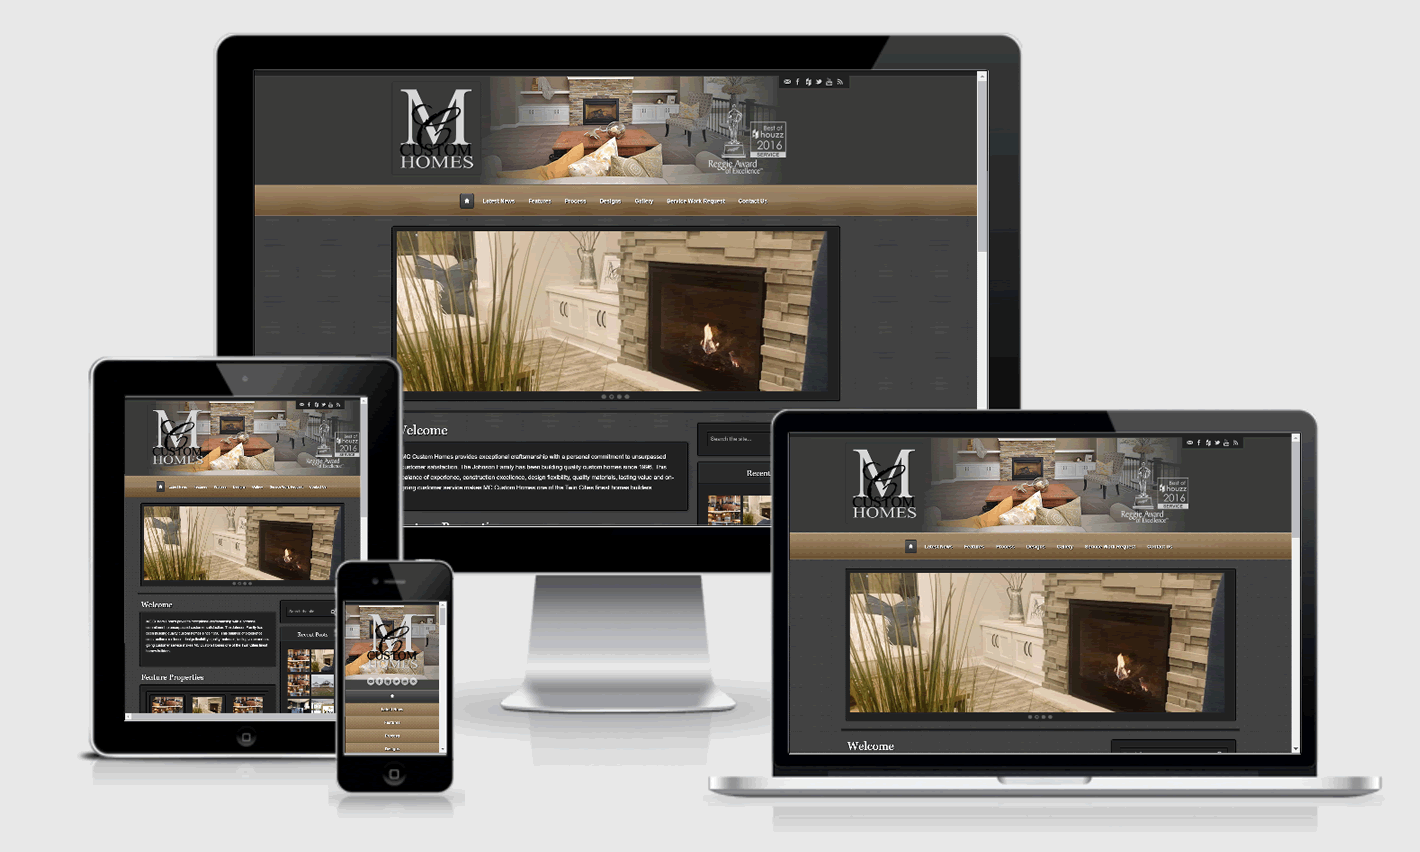 MC Custom Homes Responsive Website Design